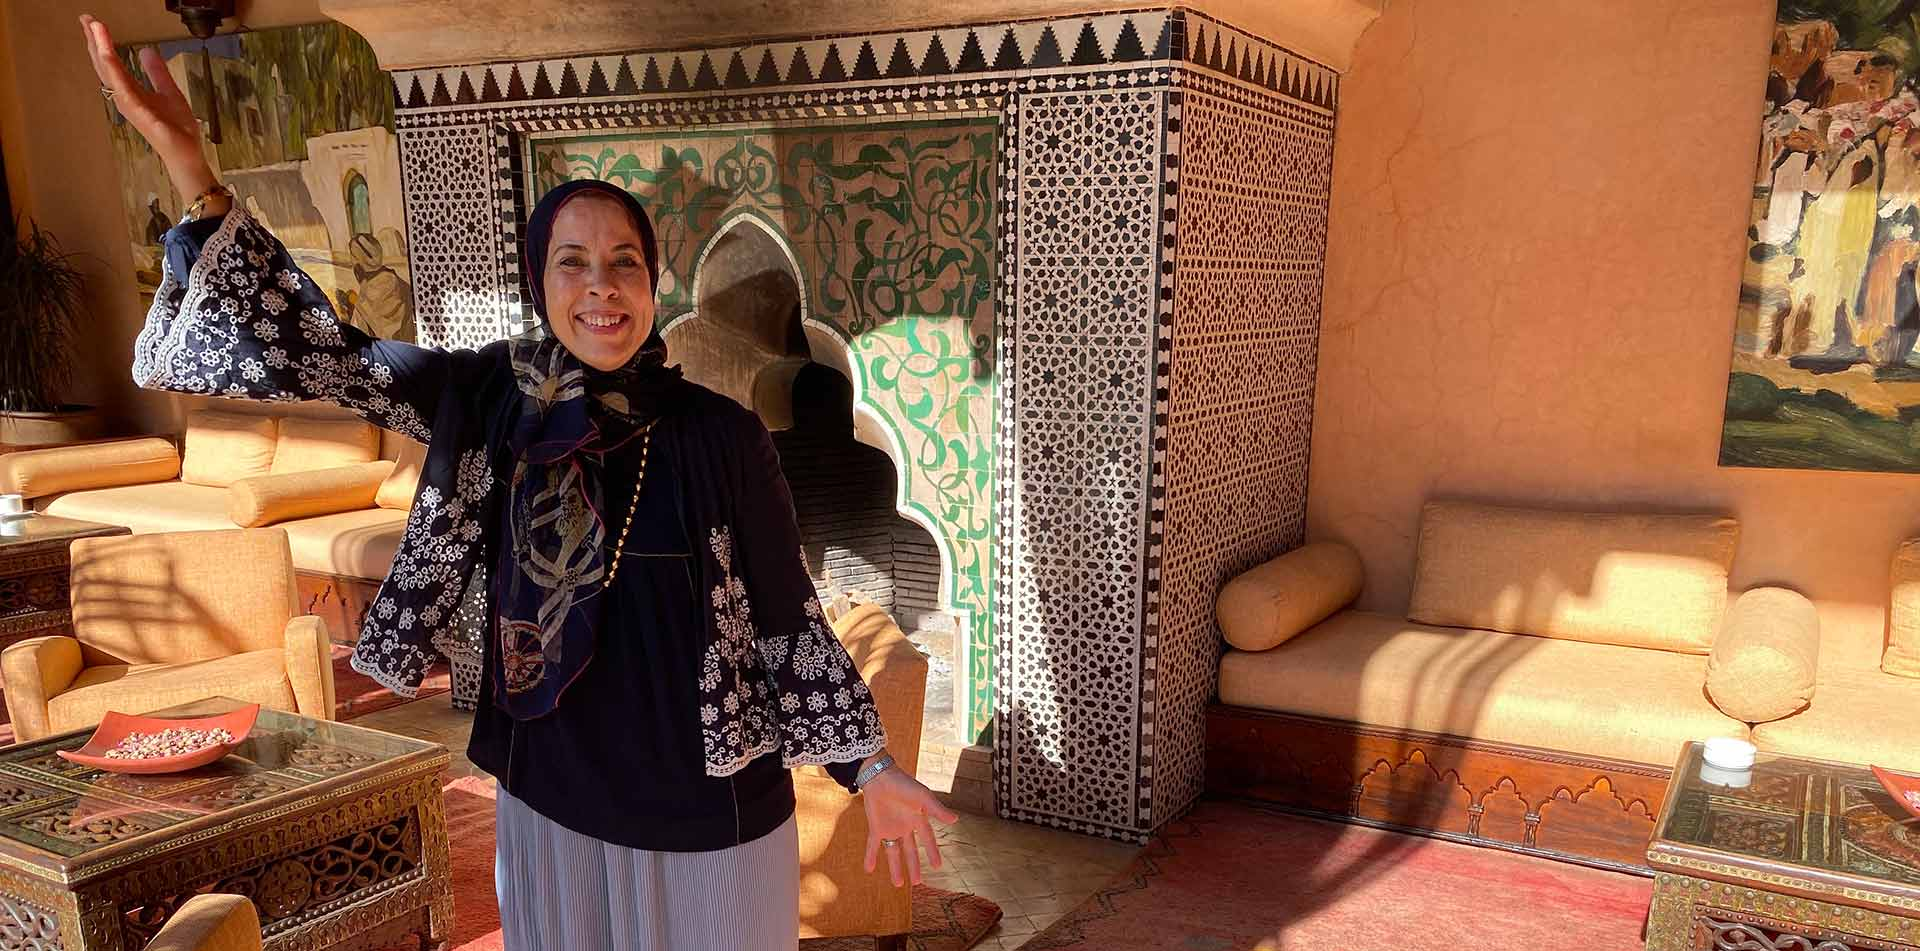 Africa Morocco happy woman wearing traditional head scarf smiling colorful mosaic fireplace - luxury vacation destinations